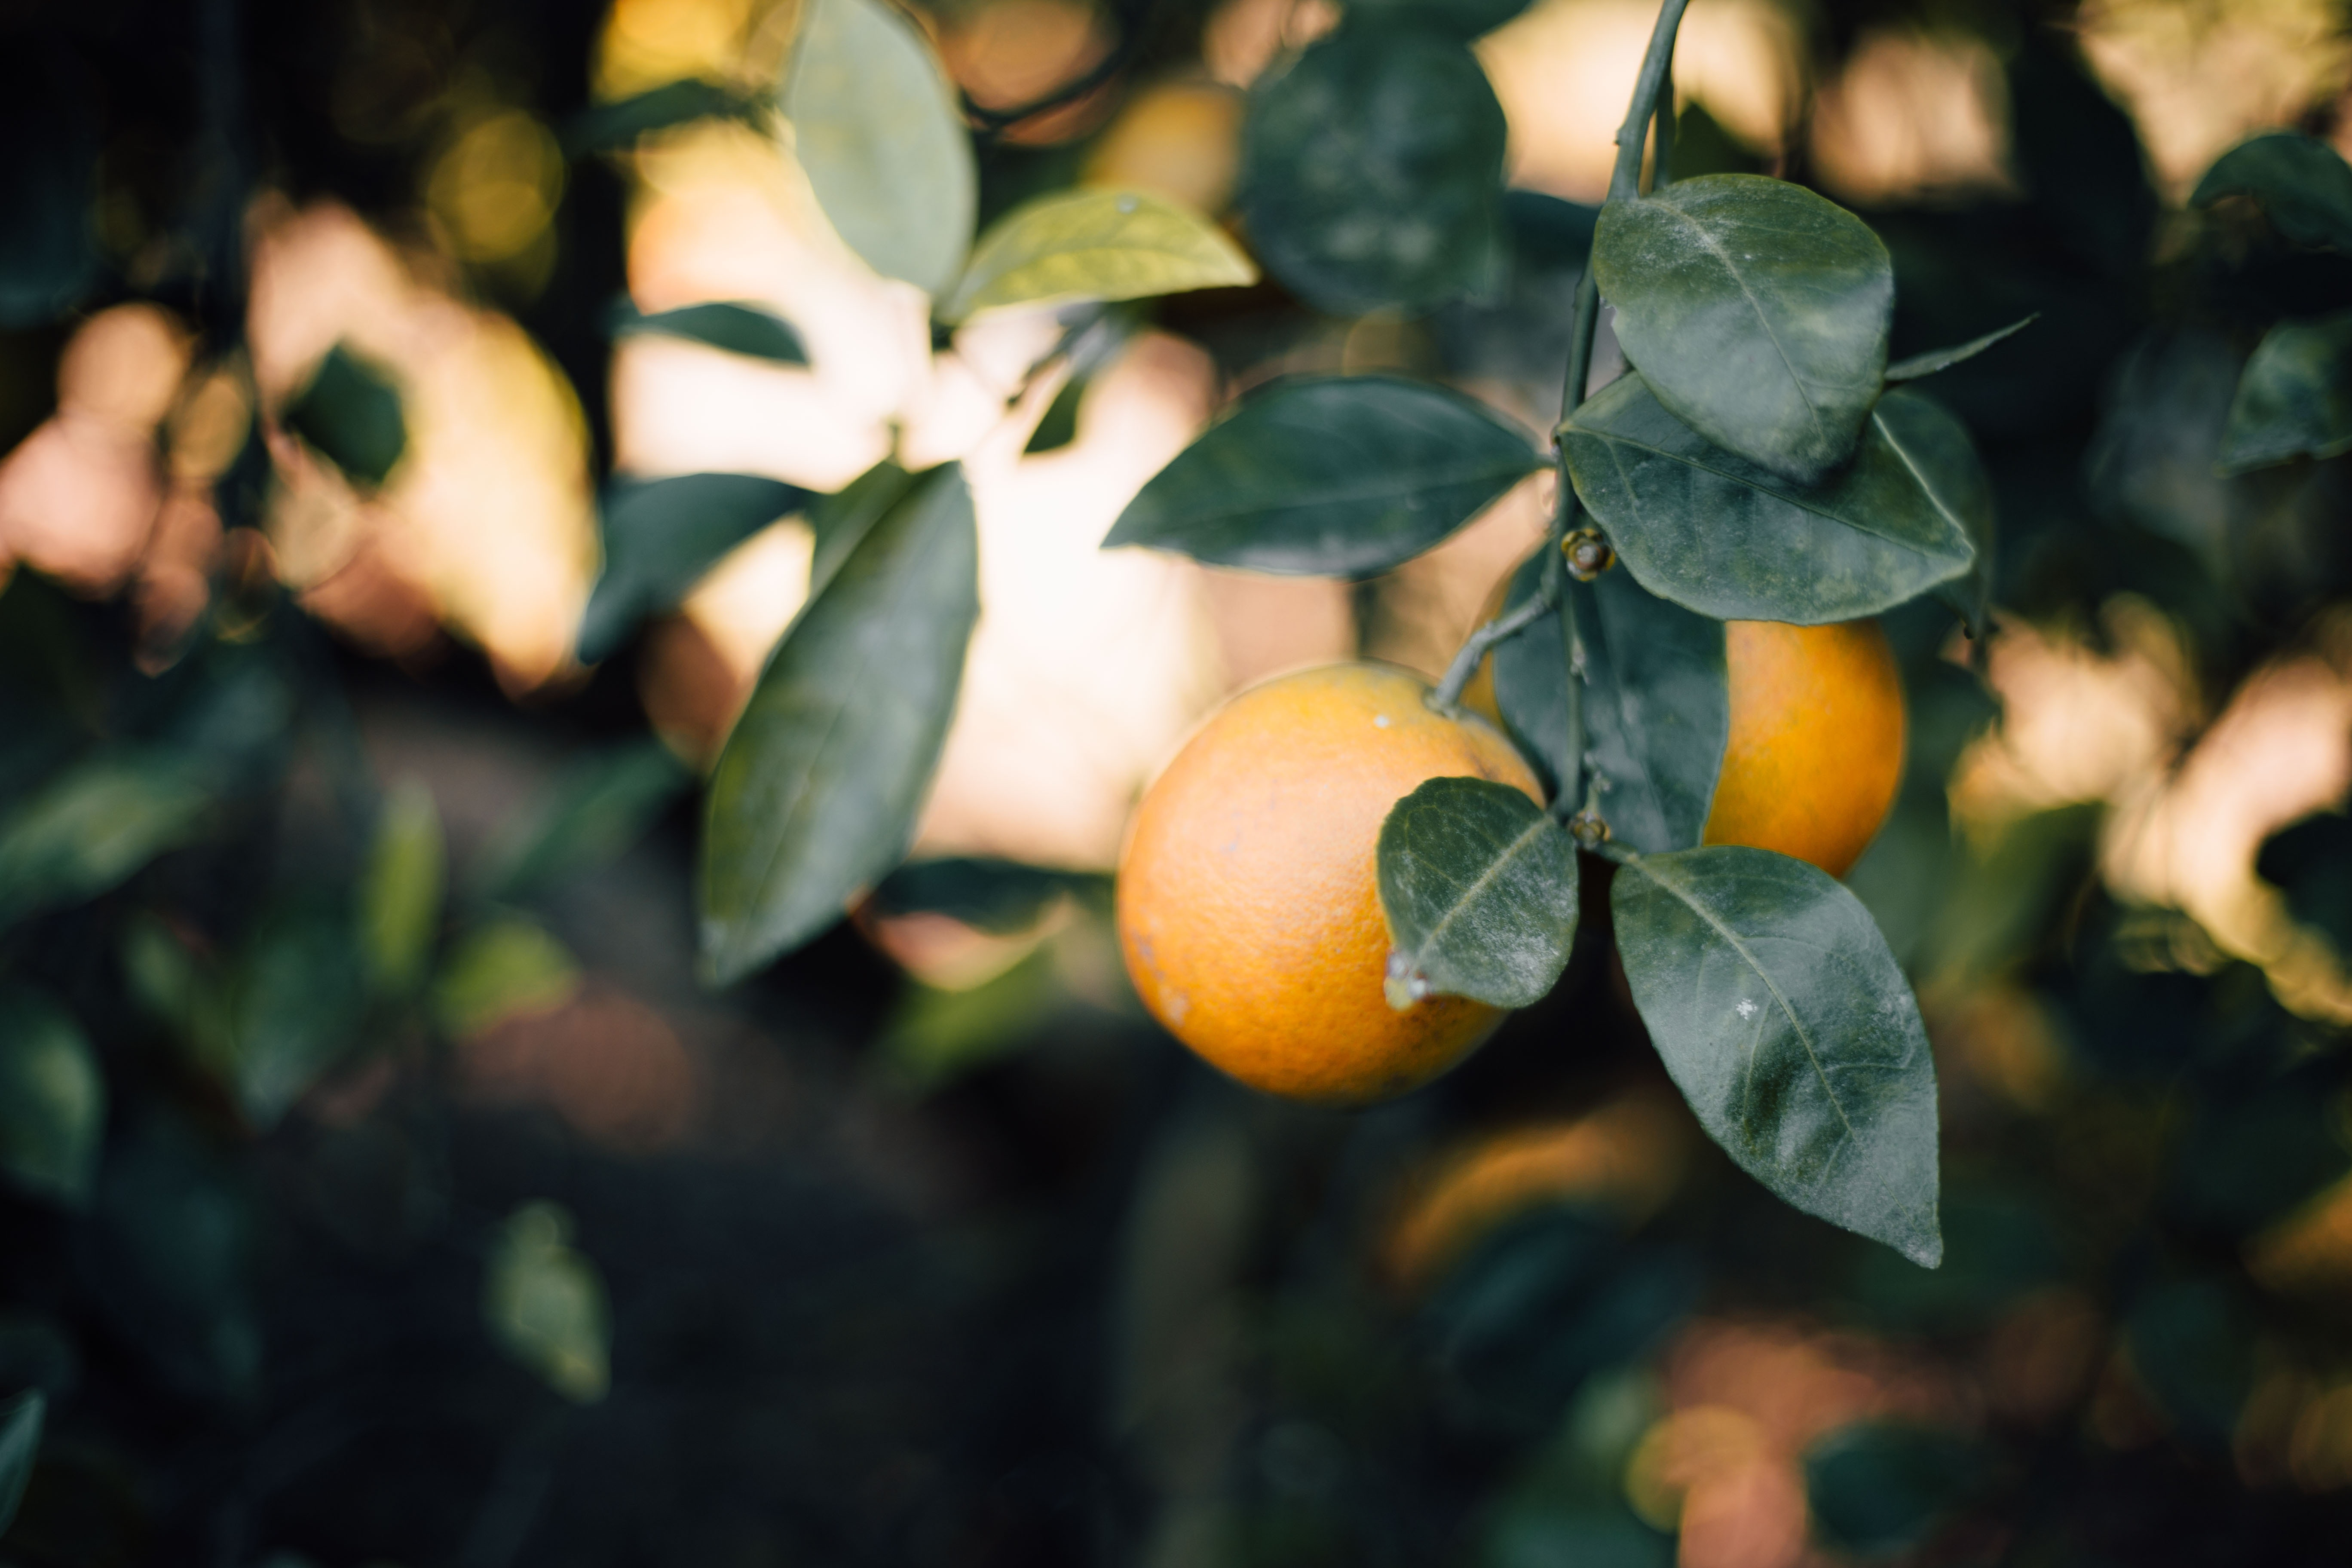 natural citrus still on tree